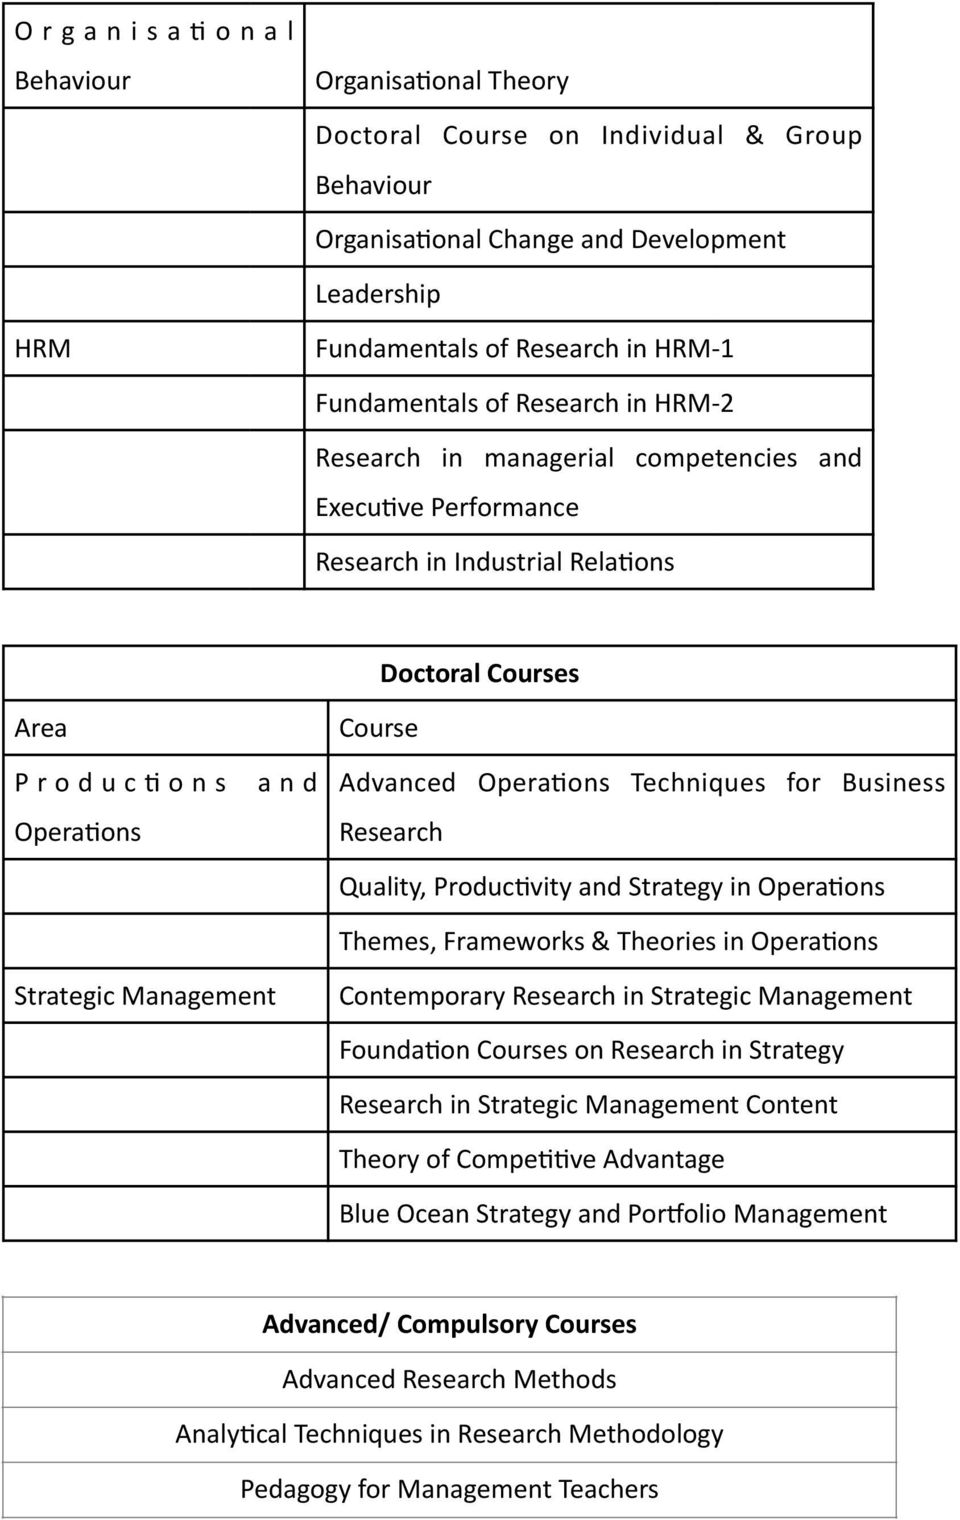 for Business Research Quality, Produc@vity and Strategy in Opera@ons Themes, Frameworks & Theories in Opera@ons Strategic Management Contemporary Research in Strategic Management Founda@on Courses on